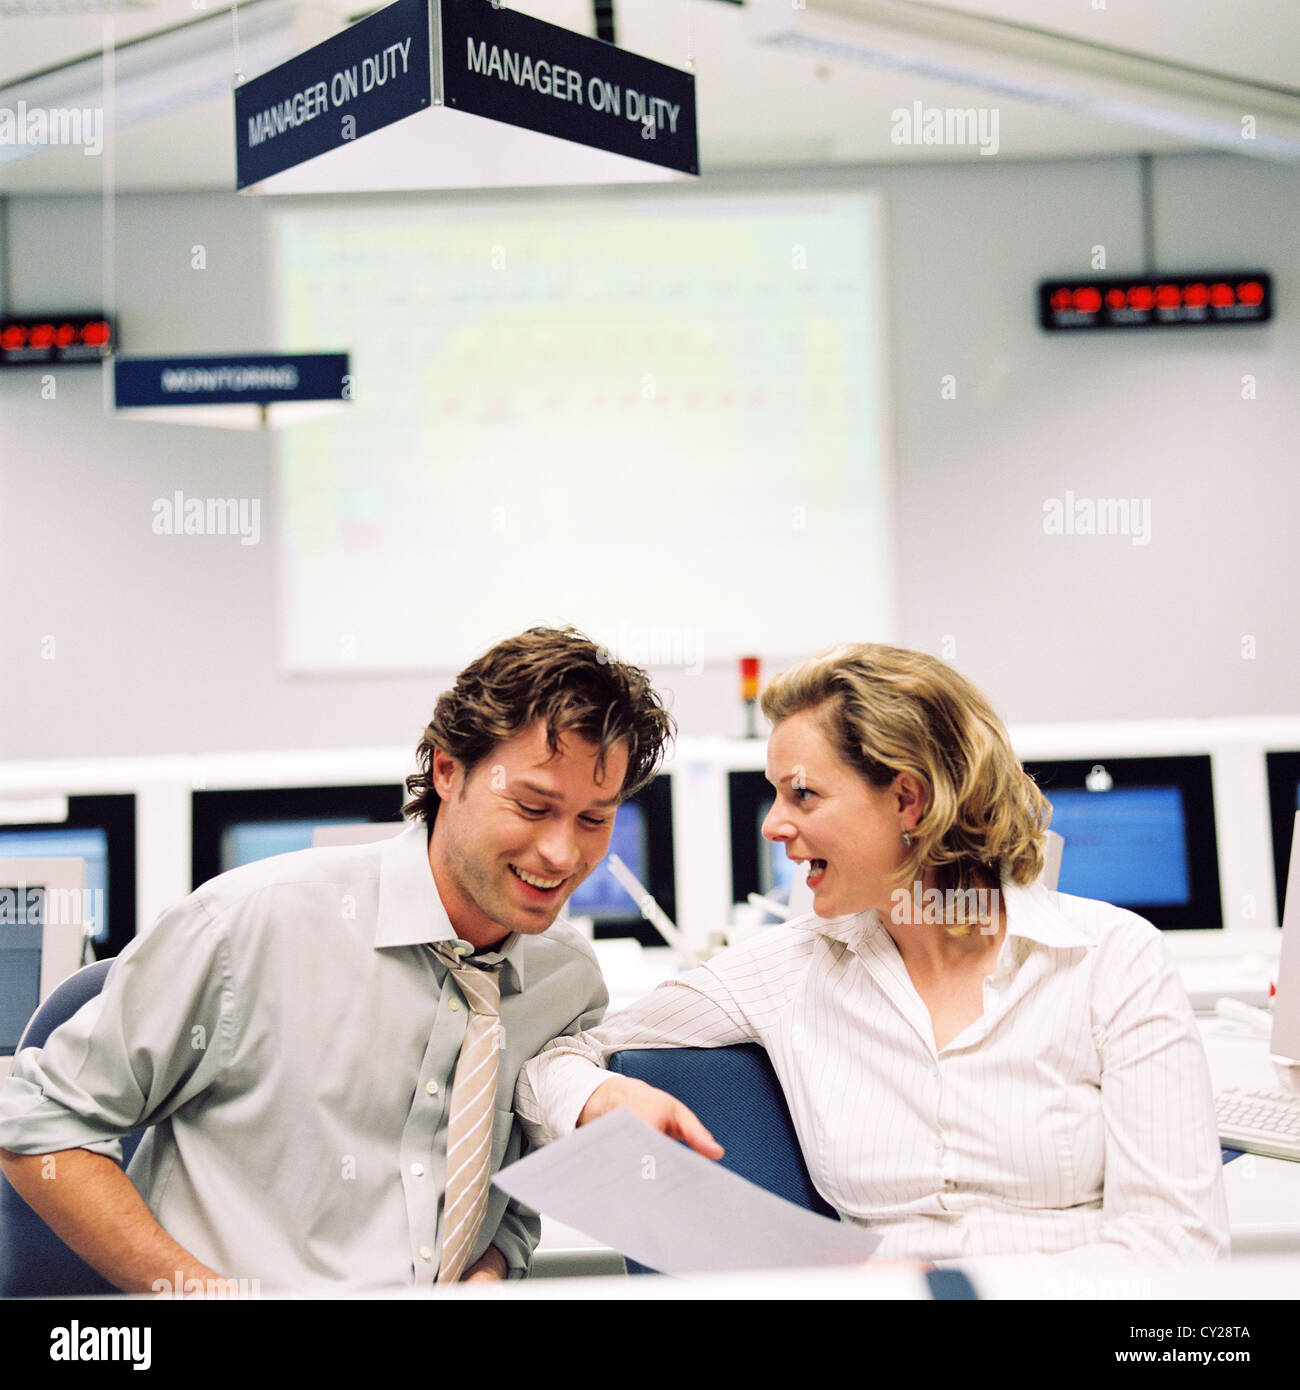 business people data center control center man woman License free except ads and outdoor billboards - Stock Image